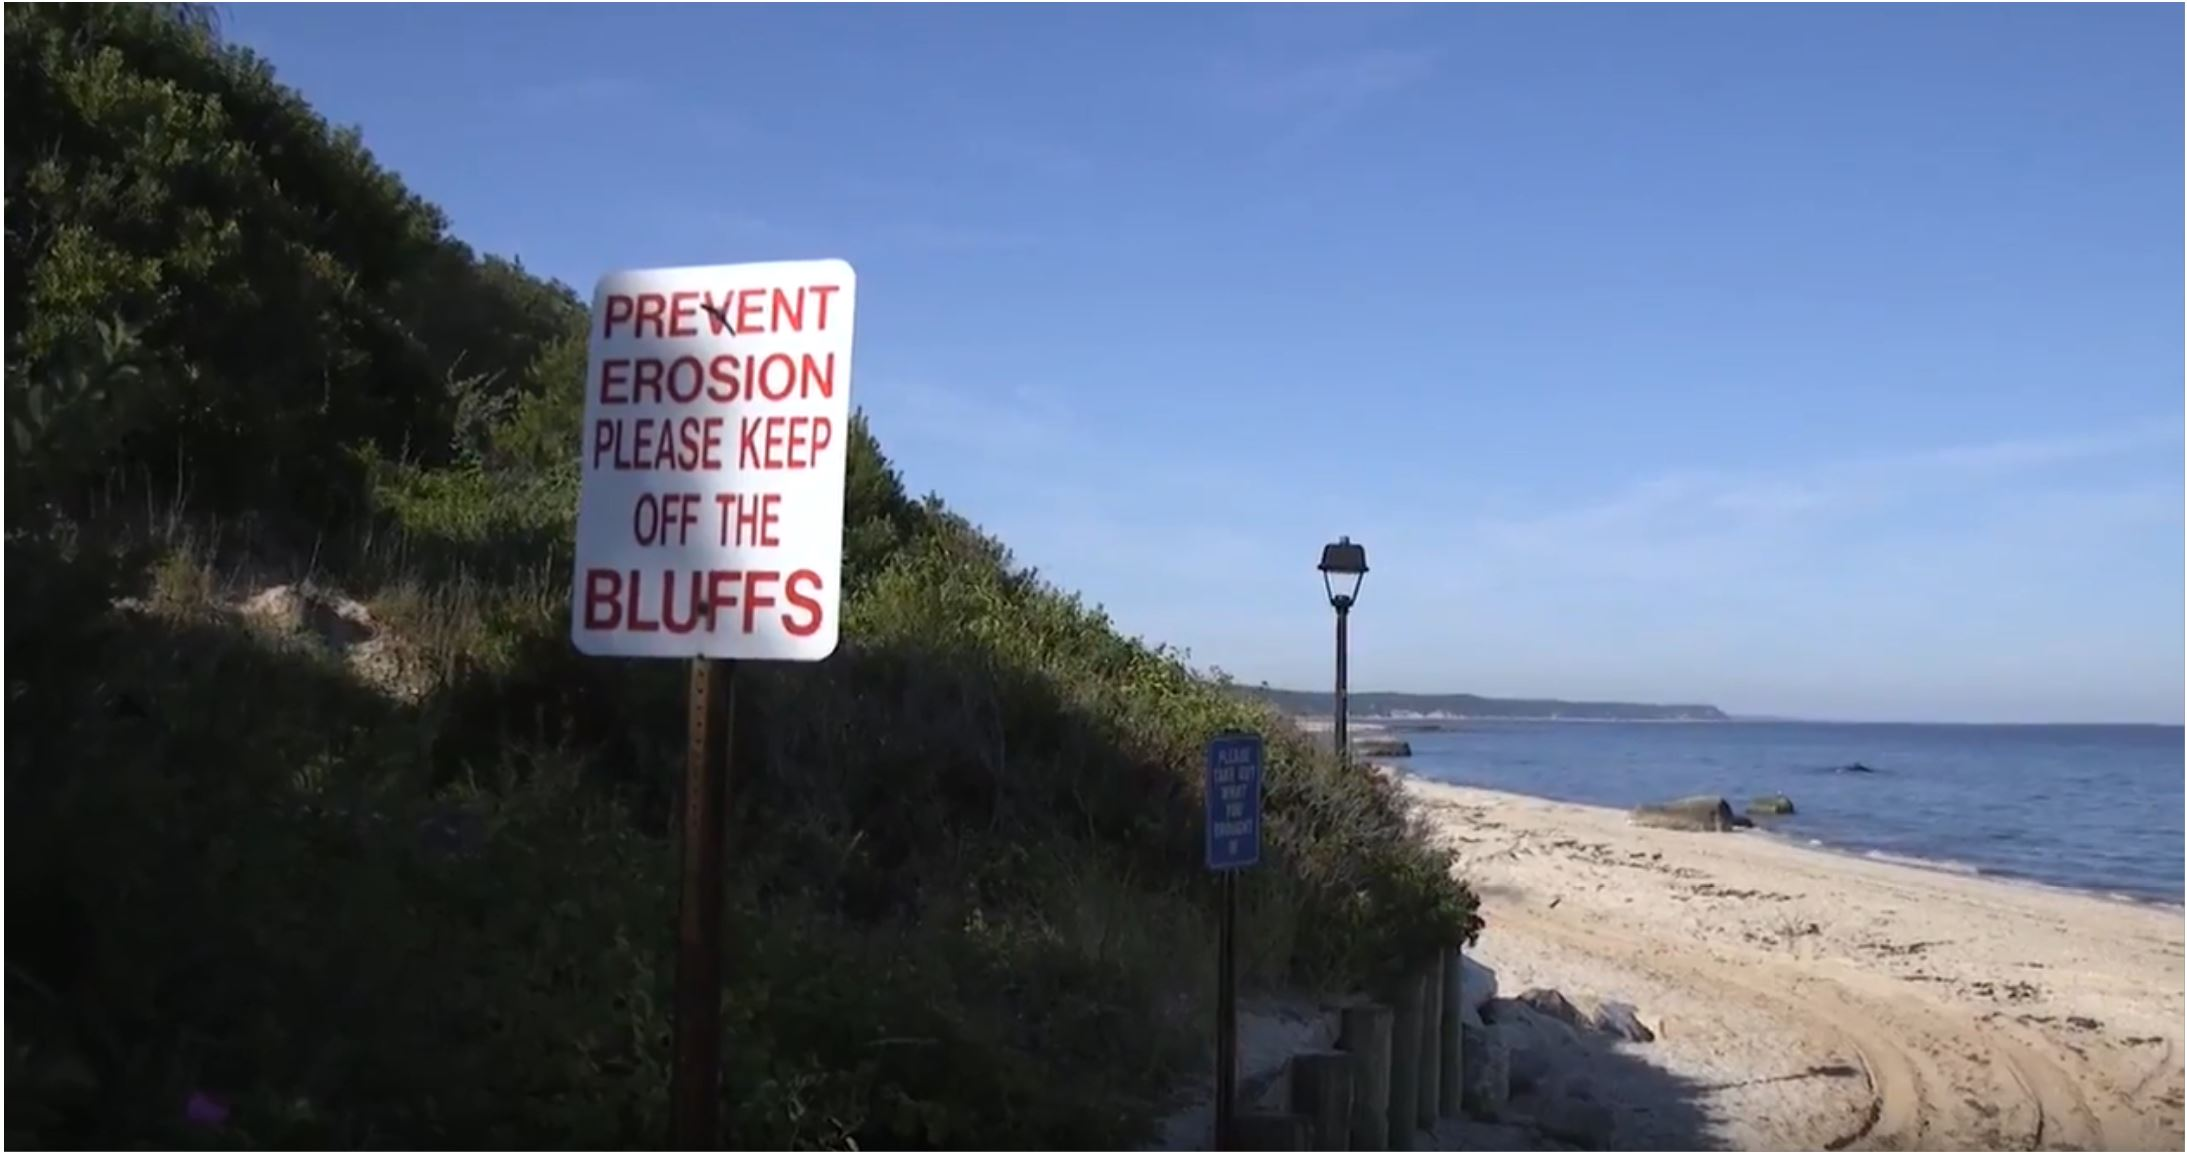 In an effort to help prevent erosion, signage encourages beachgoers to keep off coastal bluffs. New research supported by NY Sea Grant will provide information that will allow for improved prediction of bluff erosion that informs planning by coastal communities. Image credit: Cornell Cooperative Extension Marine Program